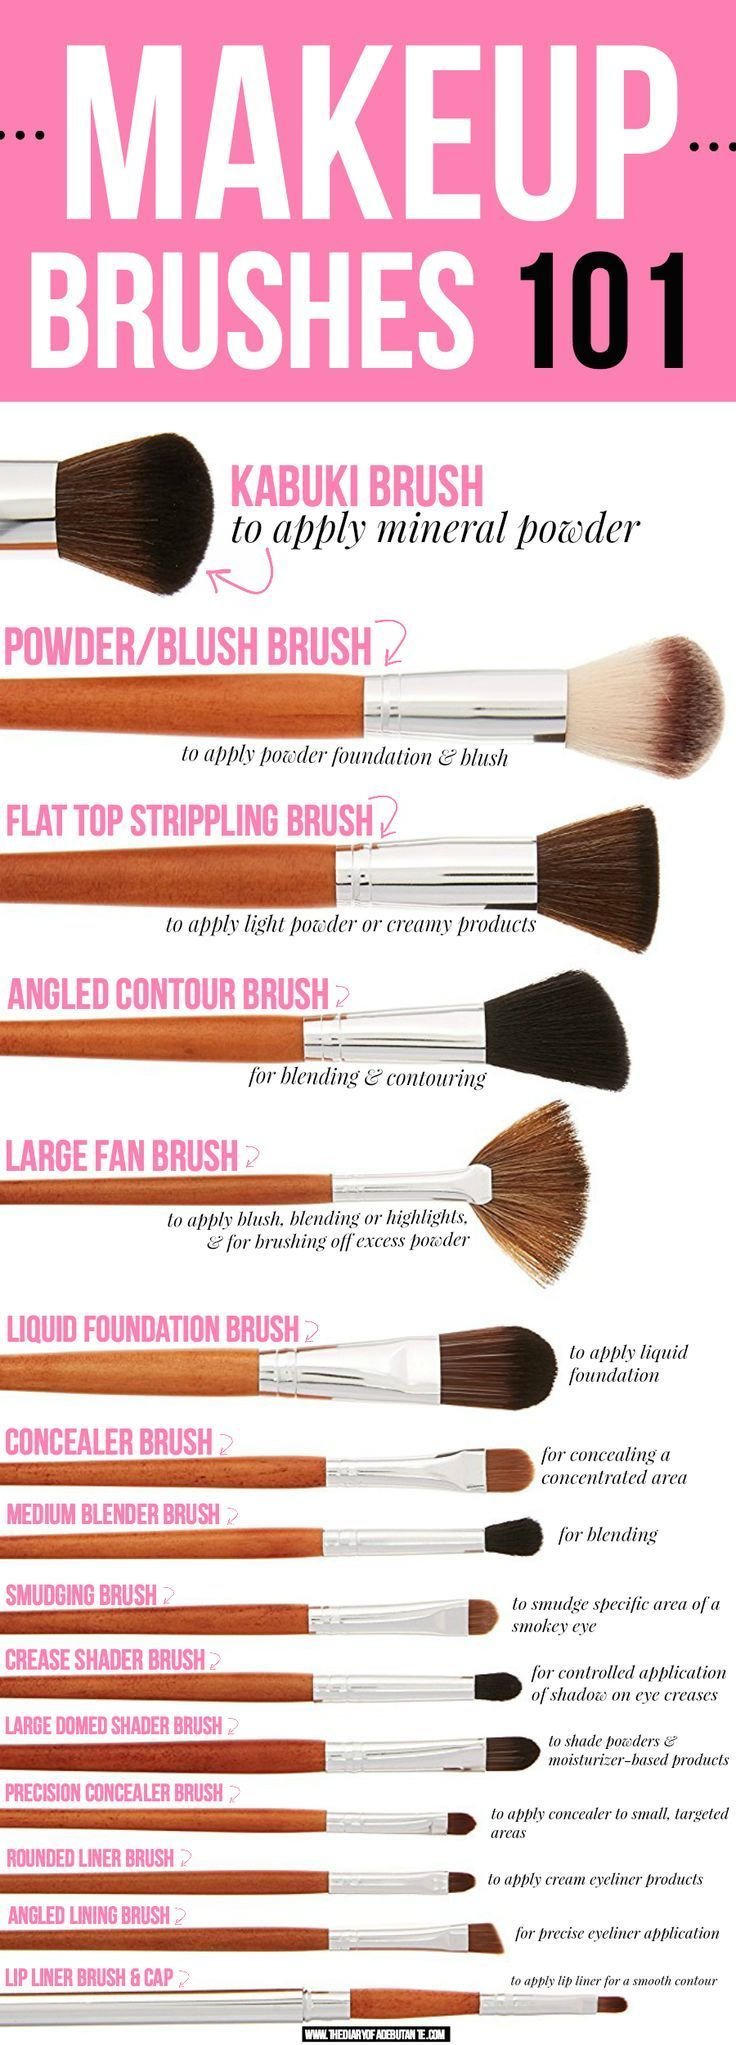 This makeup brush guide shows 15 of the best Vanity Planet makeup brushes, including how to use each type of makeup brush